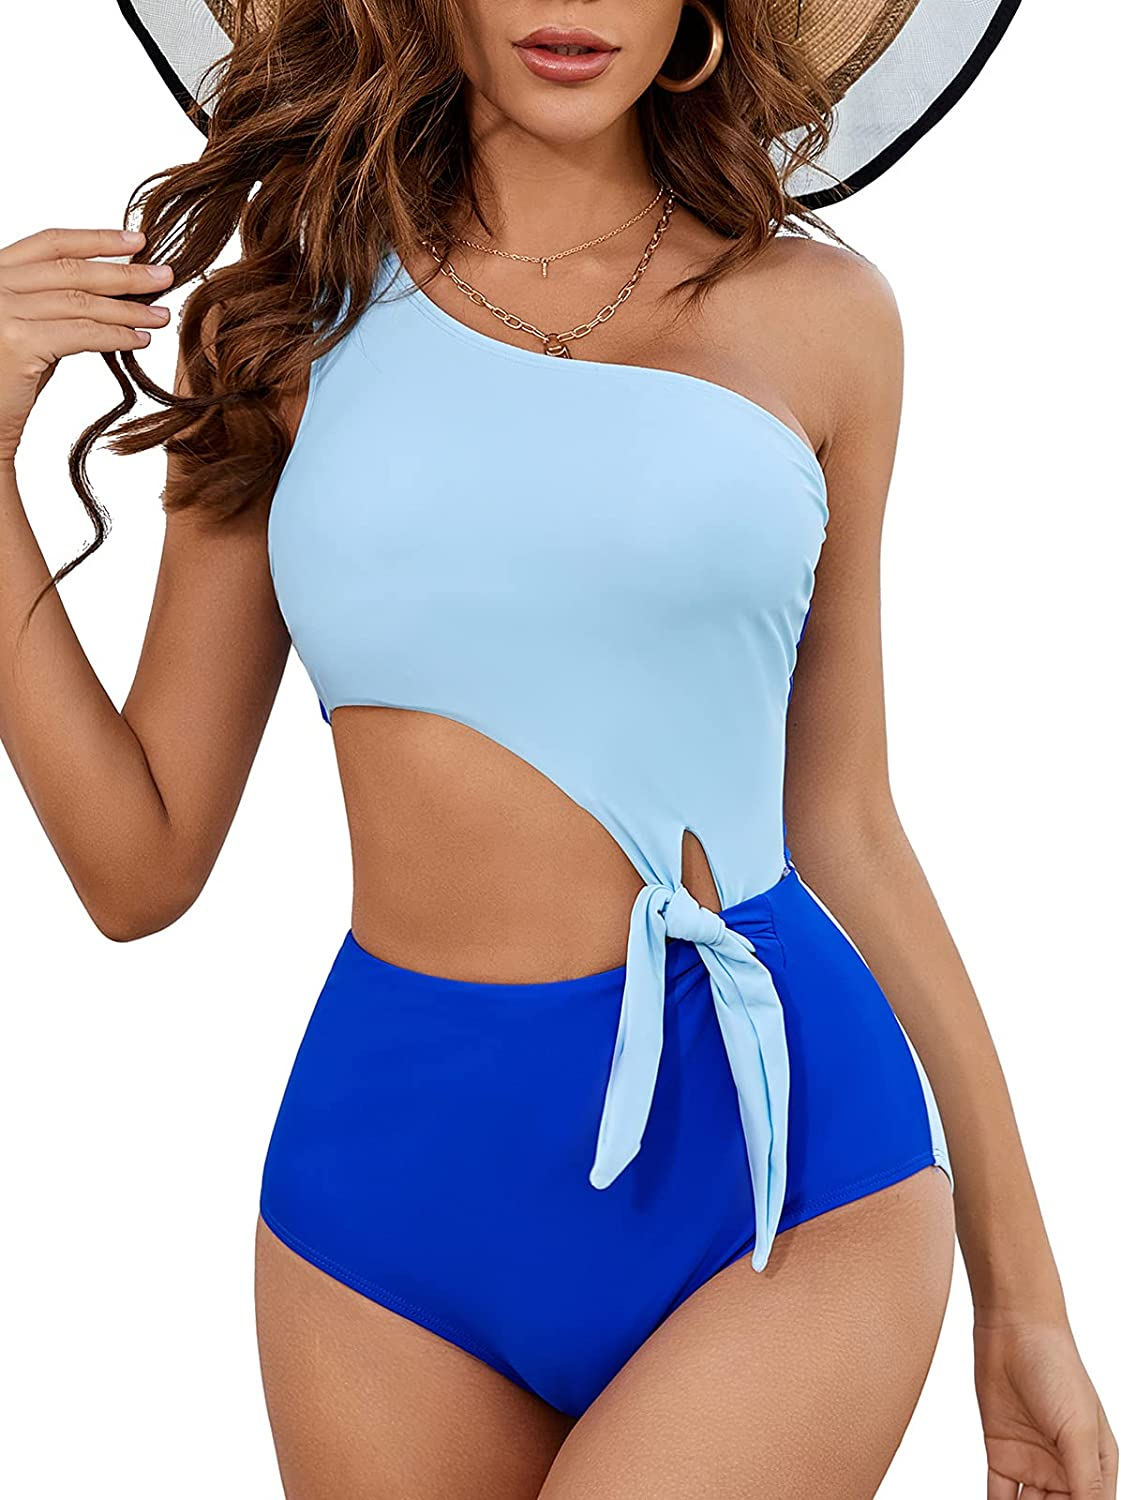 MOLYBELL Women's One Shoulder Cutout Monokini Swimsuits, Padded Bowknot Bathing Suit